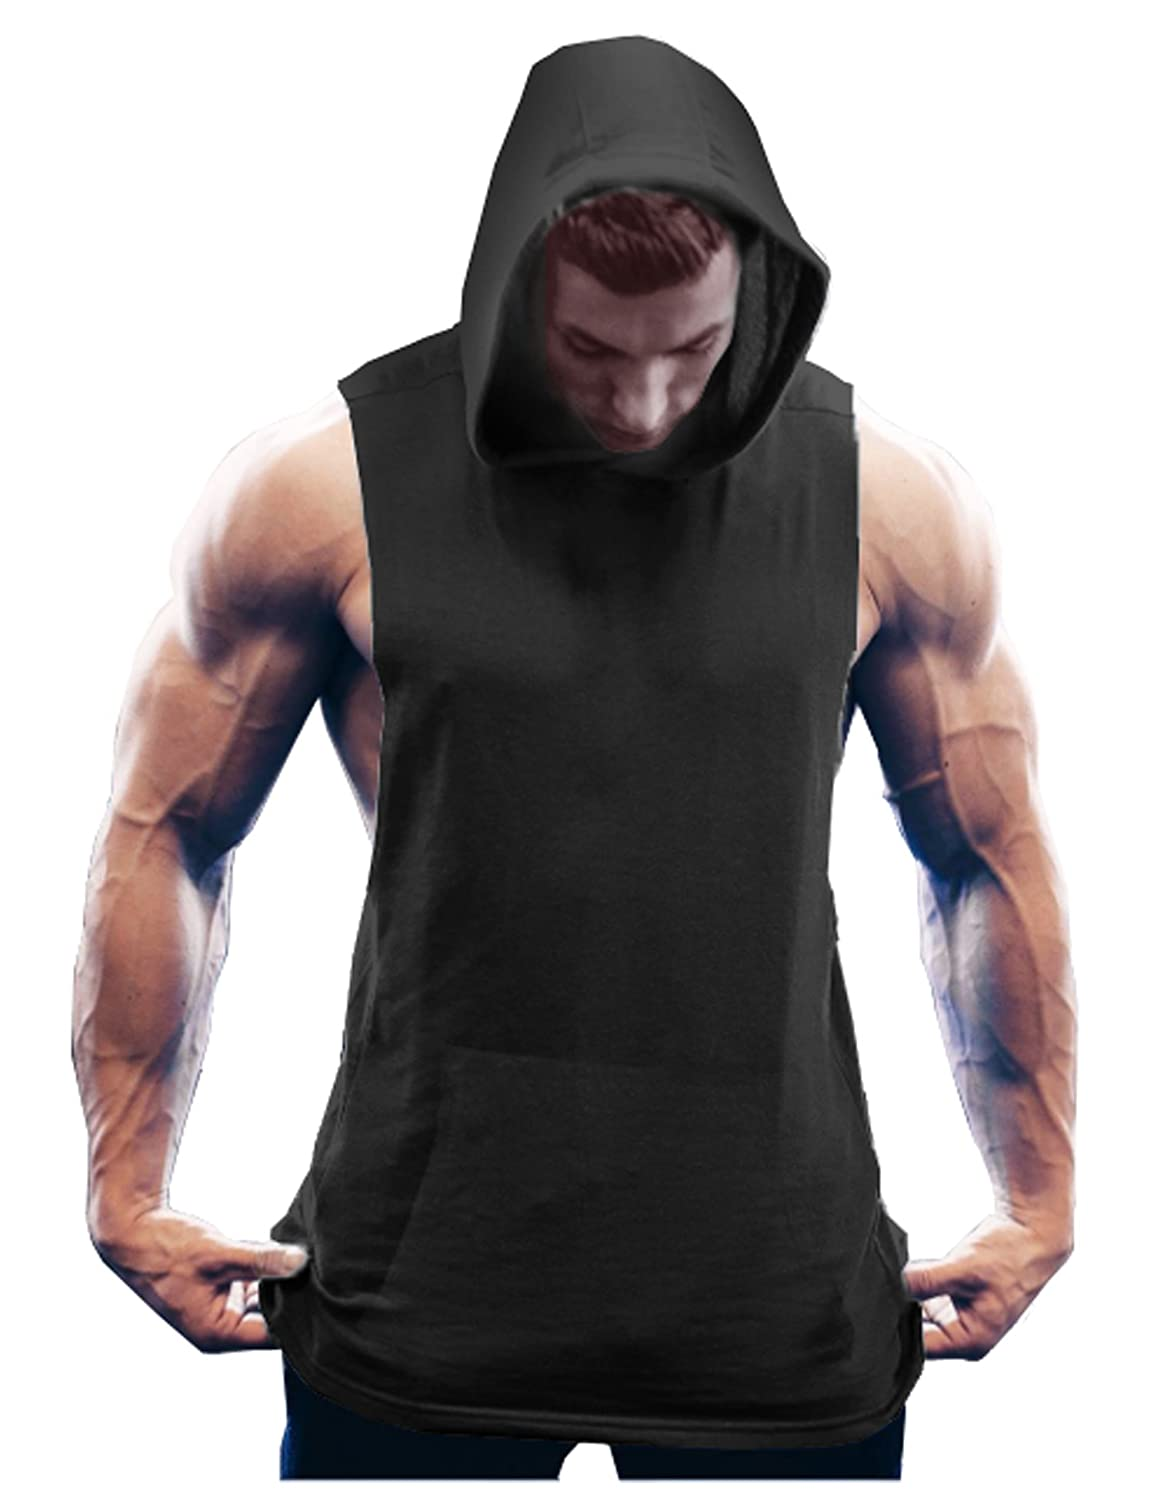 097f66428d716 Amazon.com  COOFANDY Men s Workout Hooded Tank Tops Bodybuilding Muscle Cut  Off T Shirt Sleeveless Gym Hoodies  Clothing